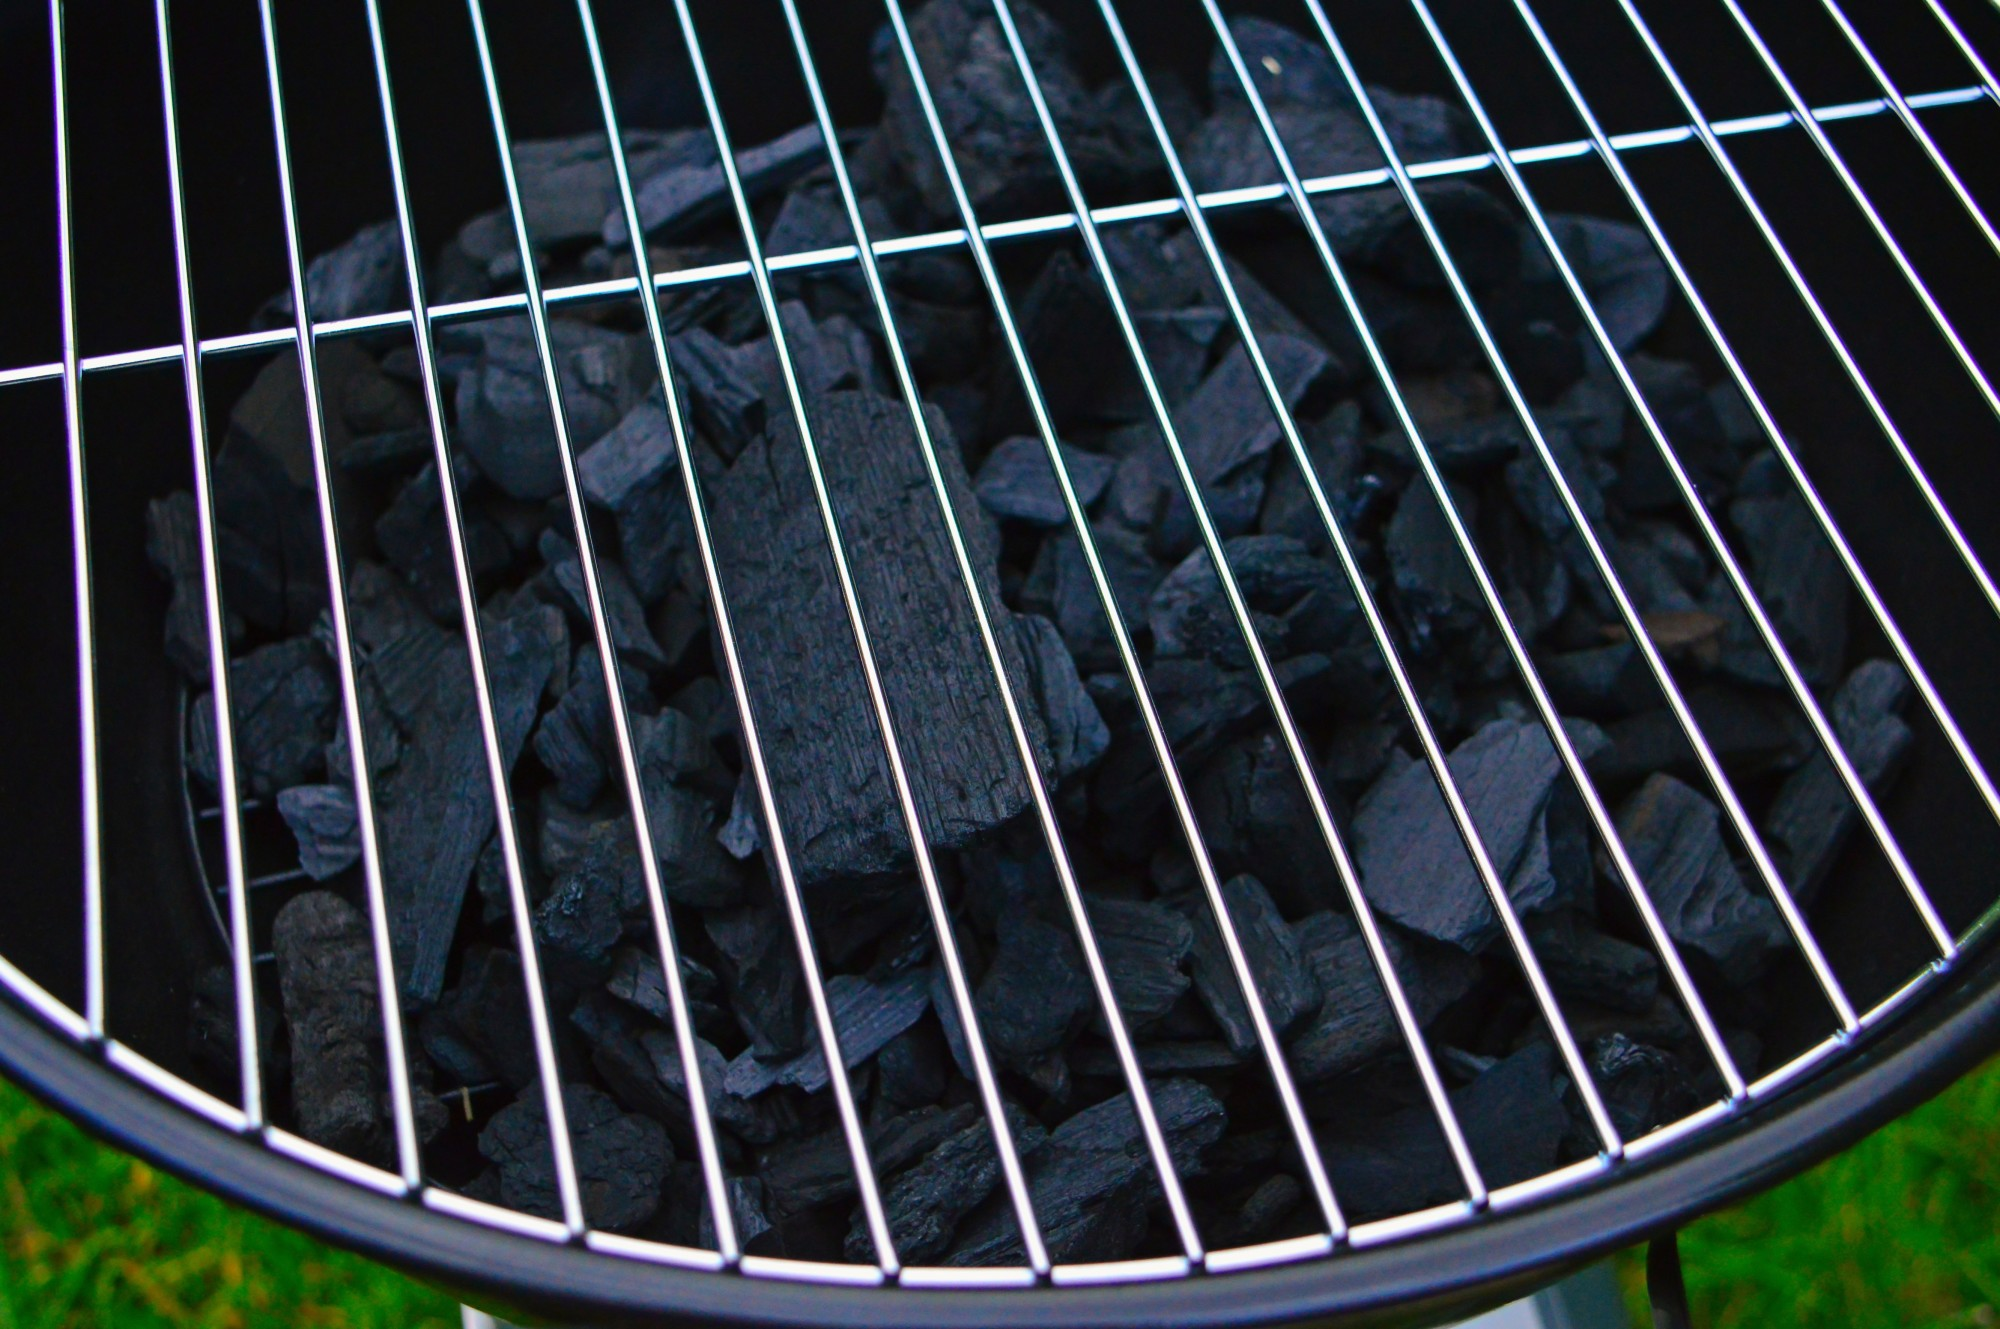 How to Clean Grill Grates for Better Tasting Food